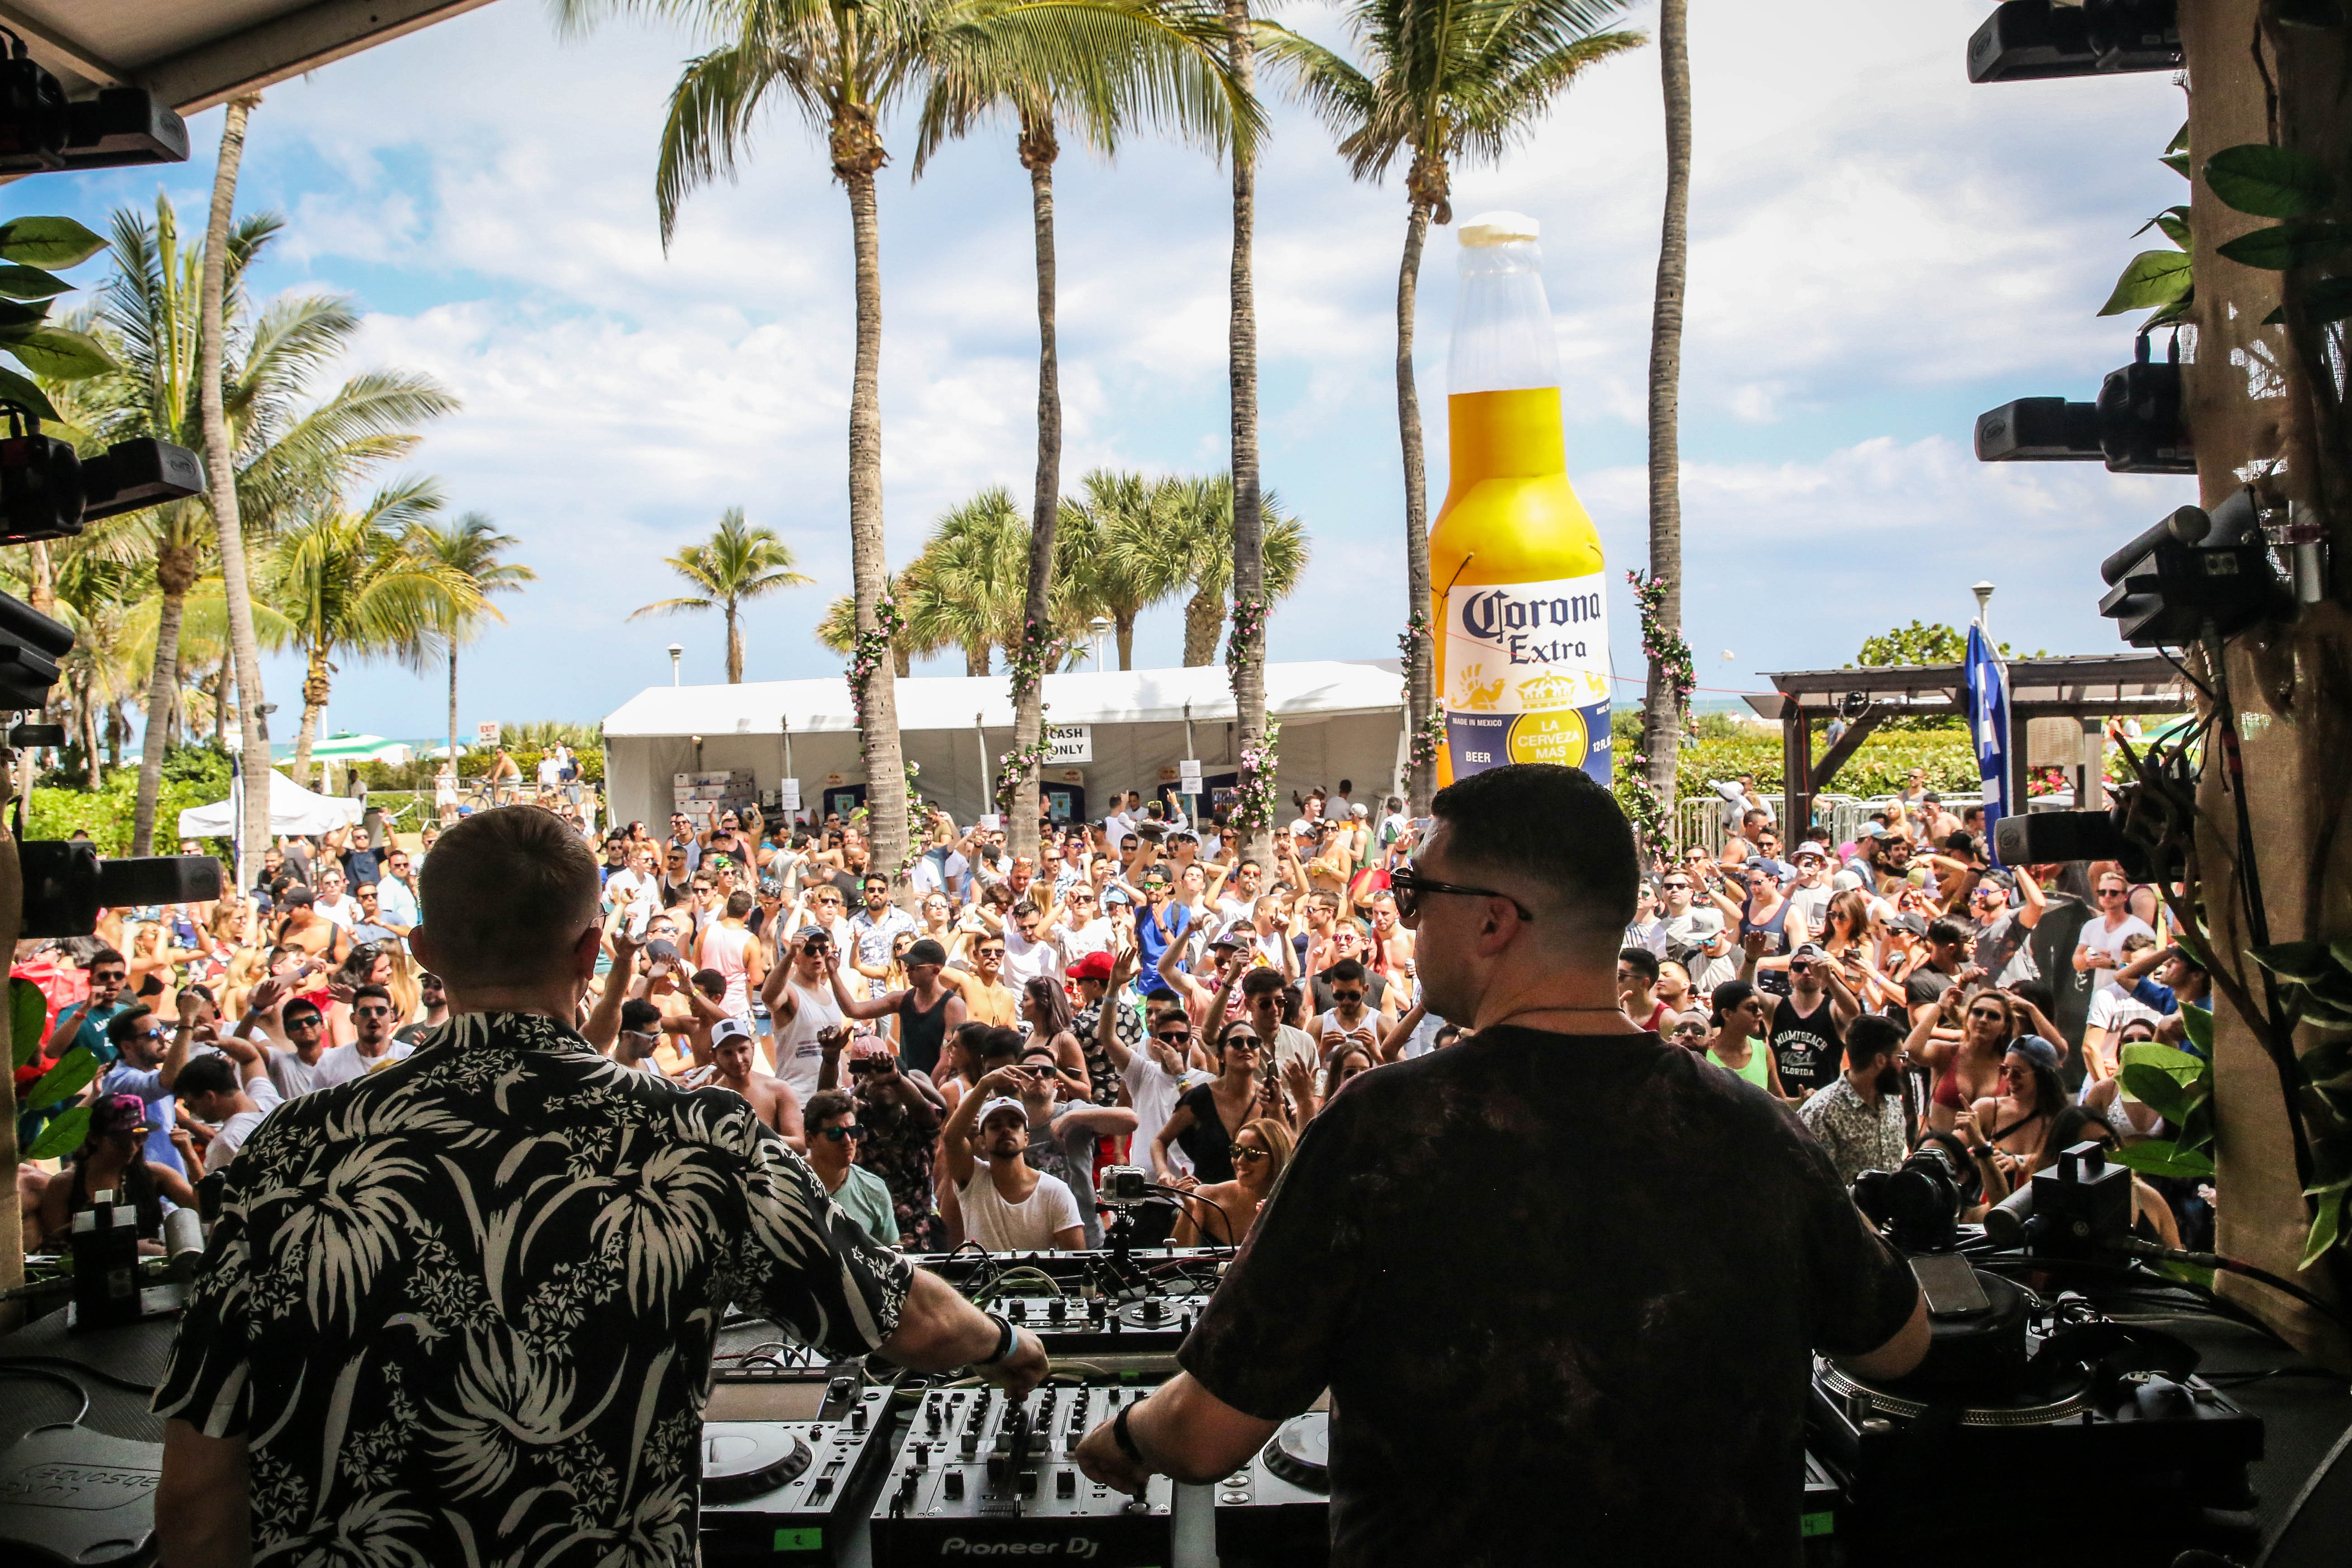 34 insanely amazing snaps from DJ Mag's Miami pool party